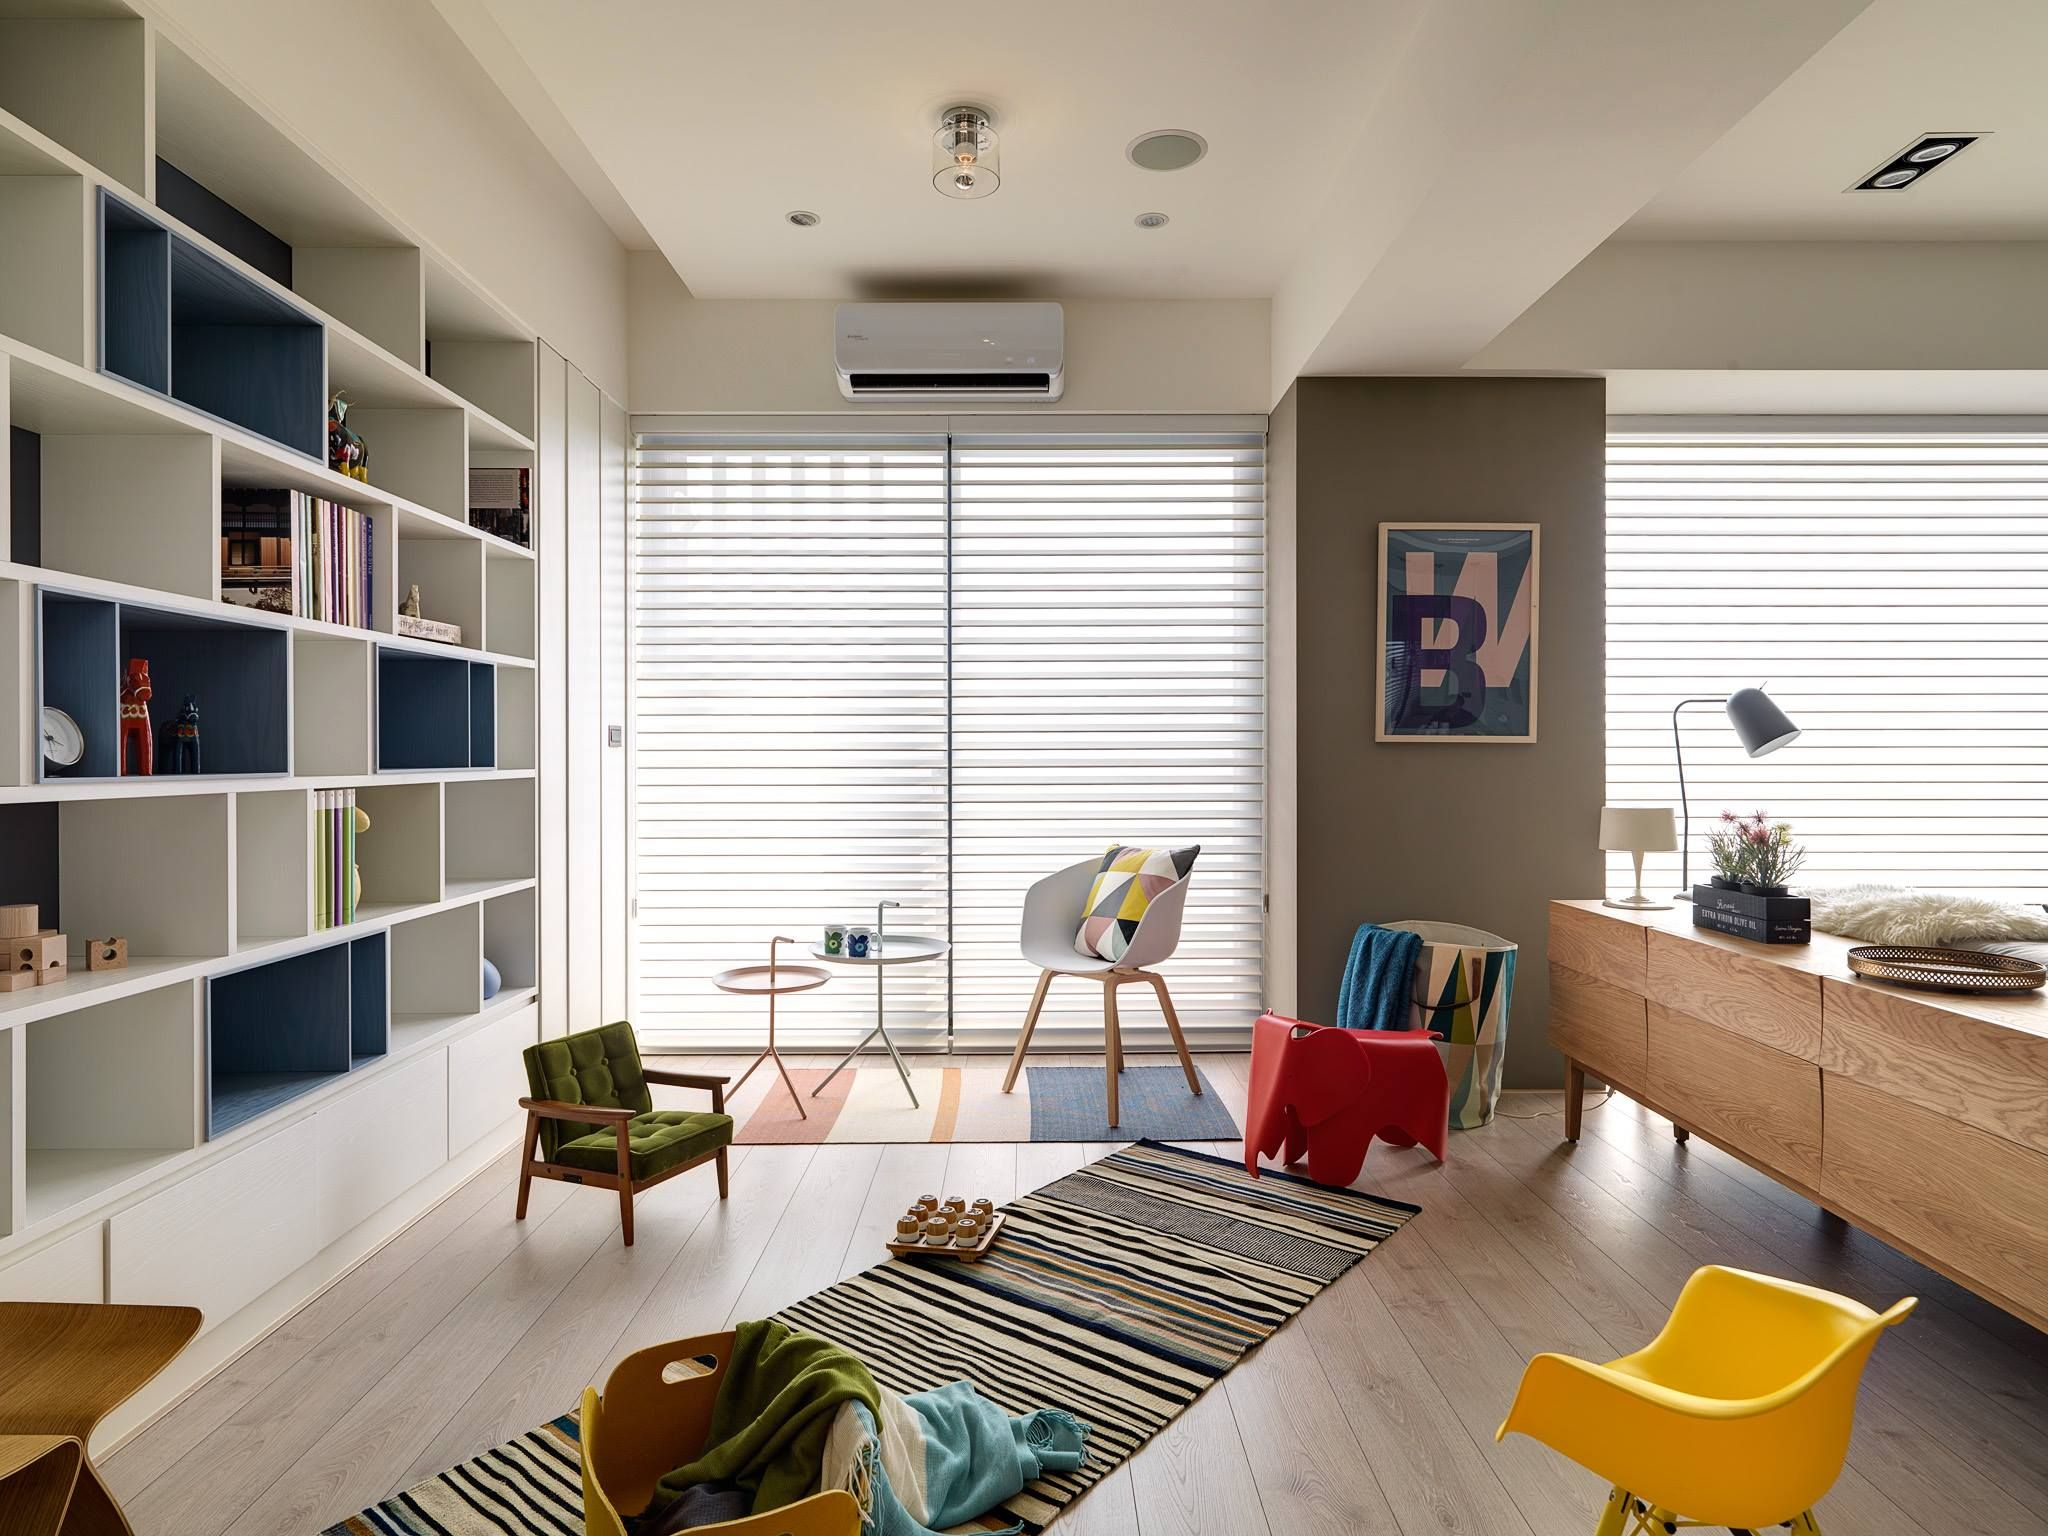 Nordic Decor Inspiration In Two Colorful Homes | Nordic design ...